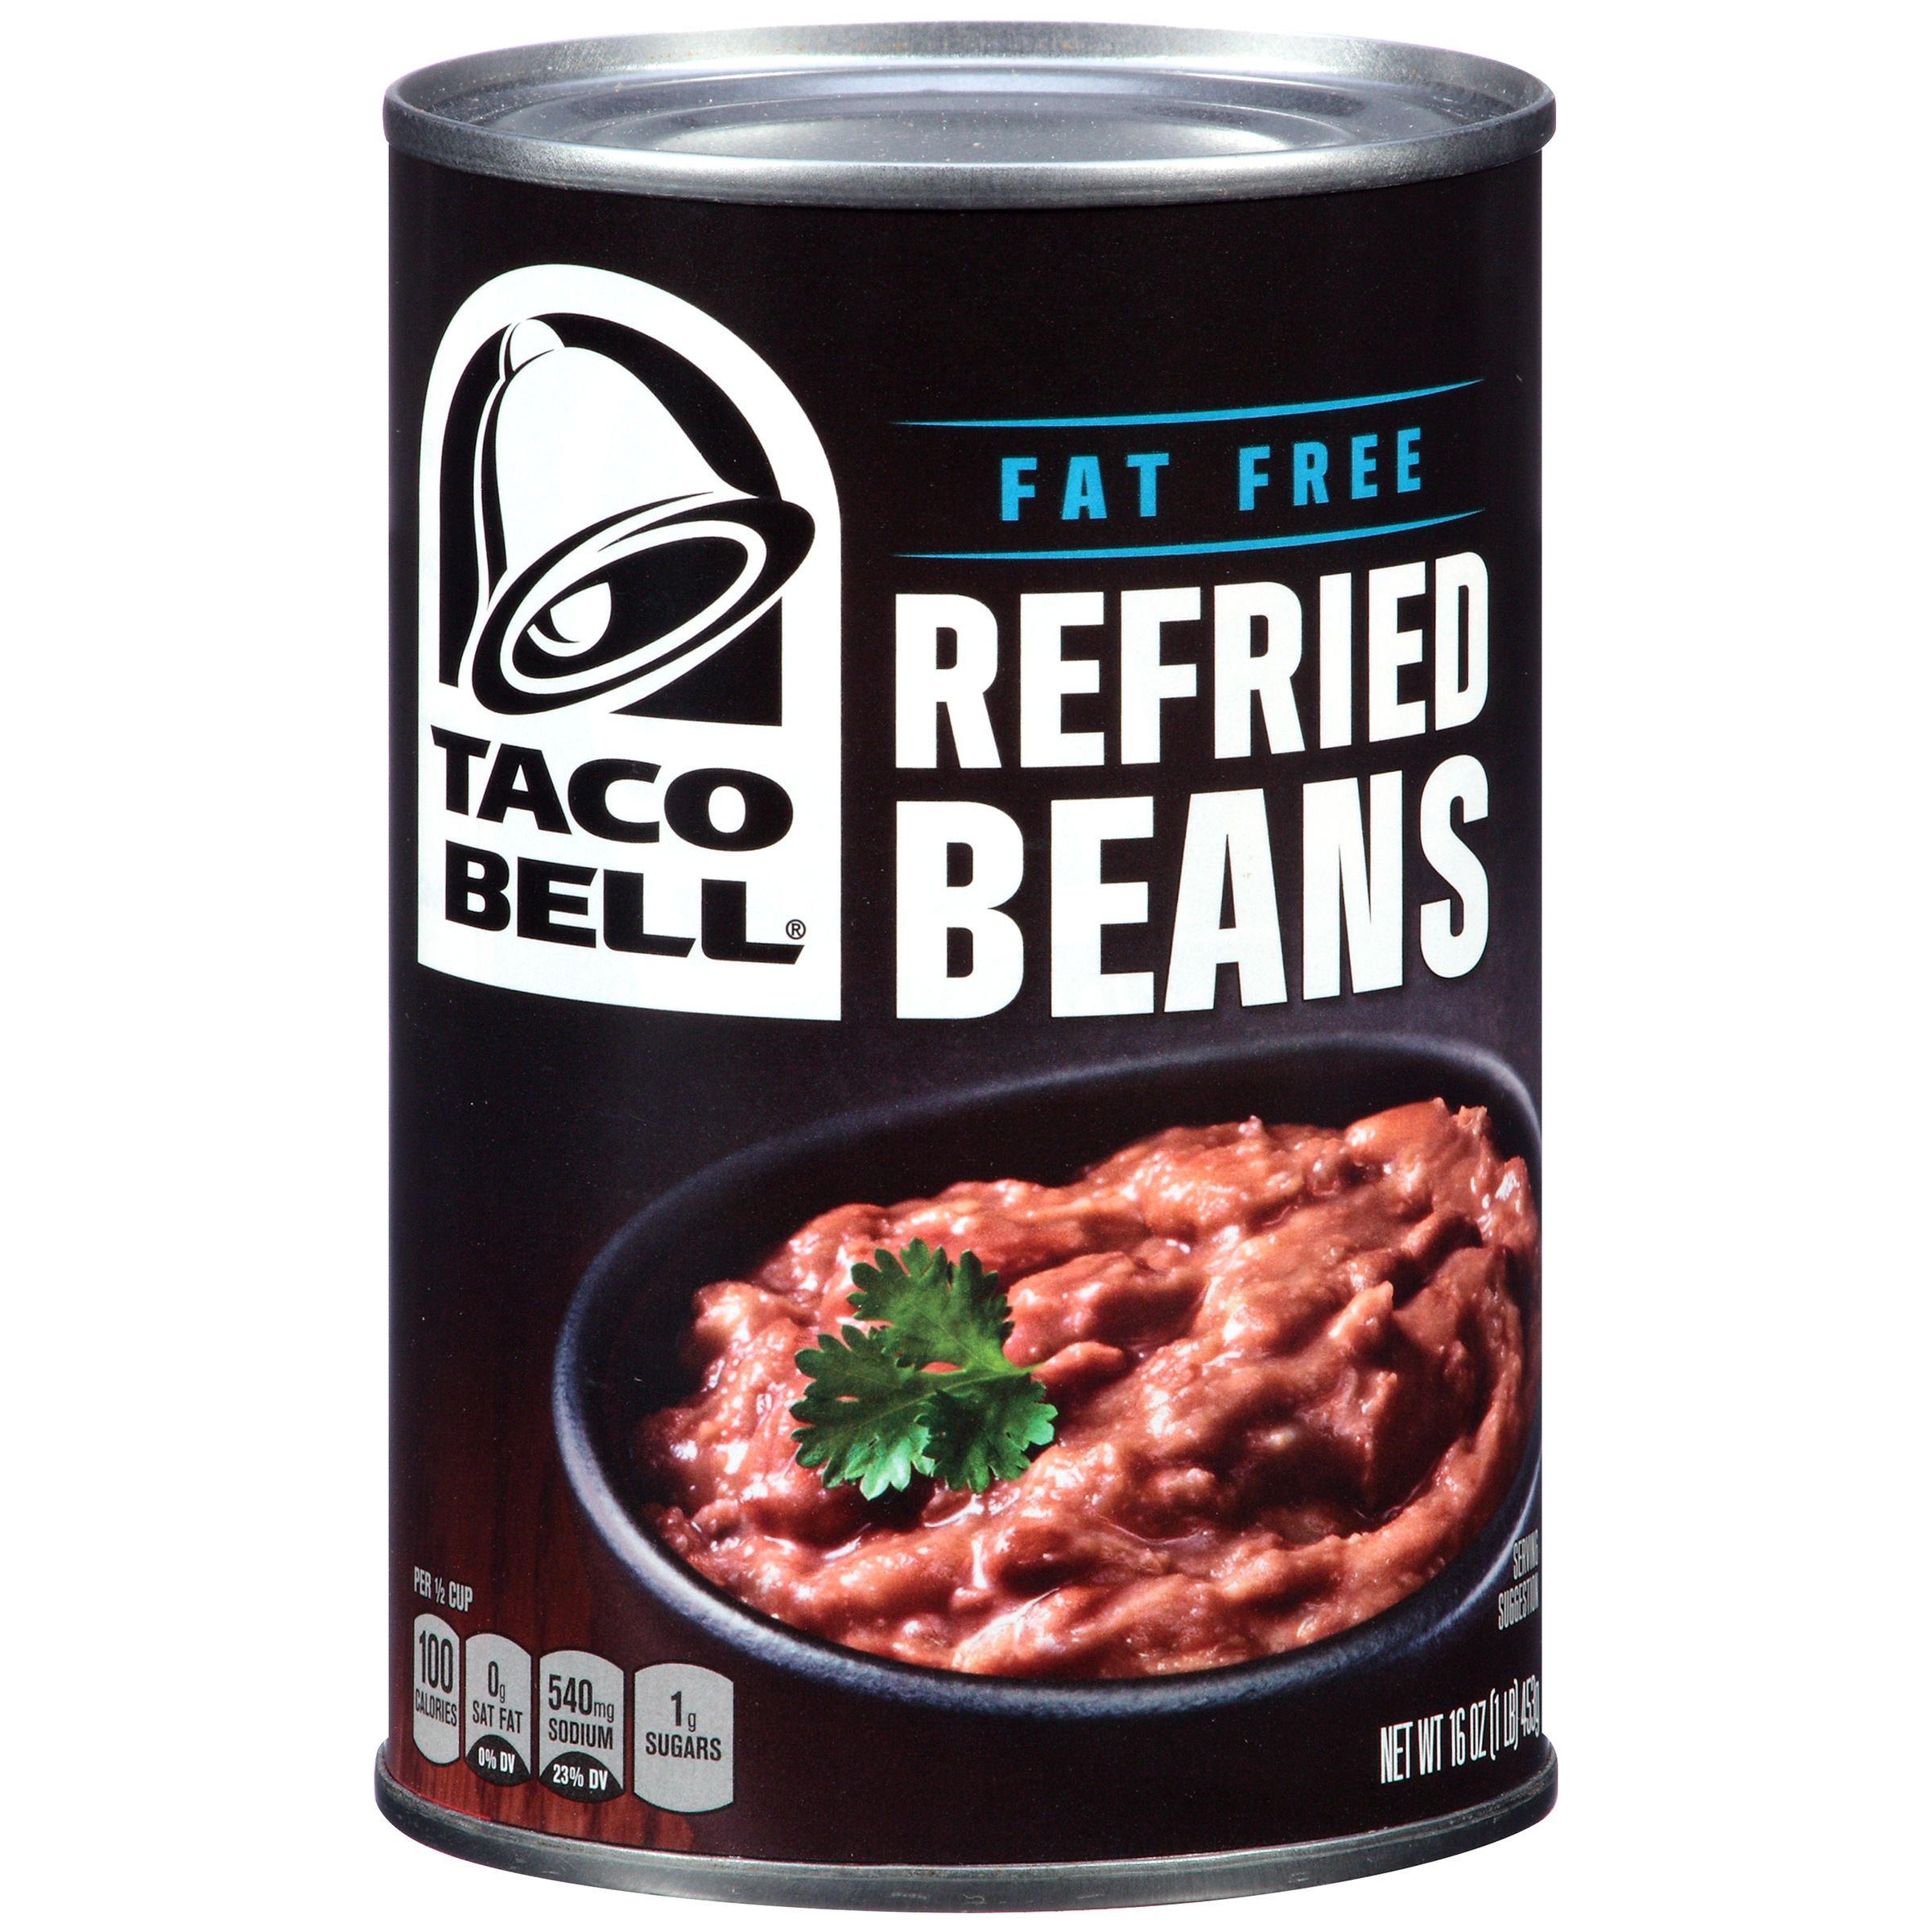 Taco Bell Refried Beans, Fat Free, 16 Oz